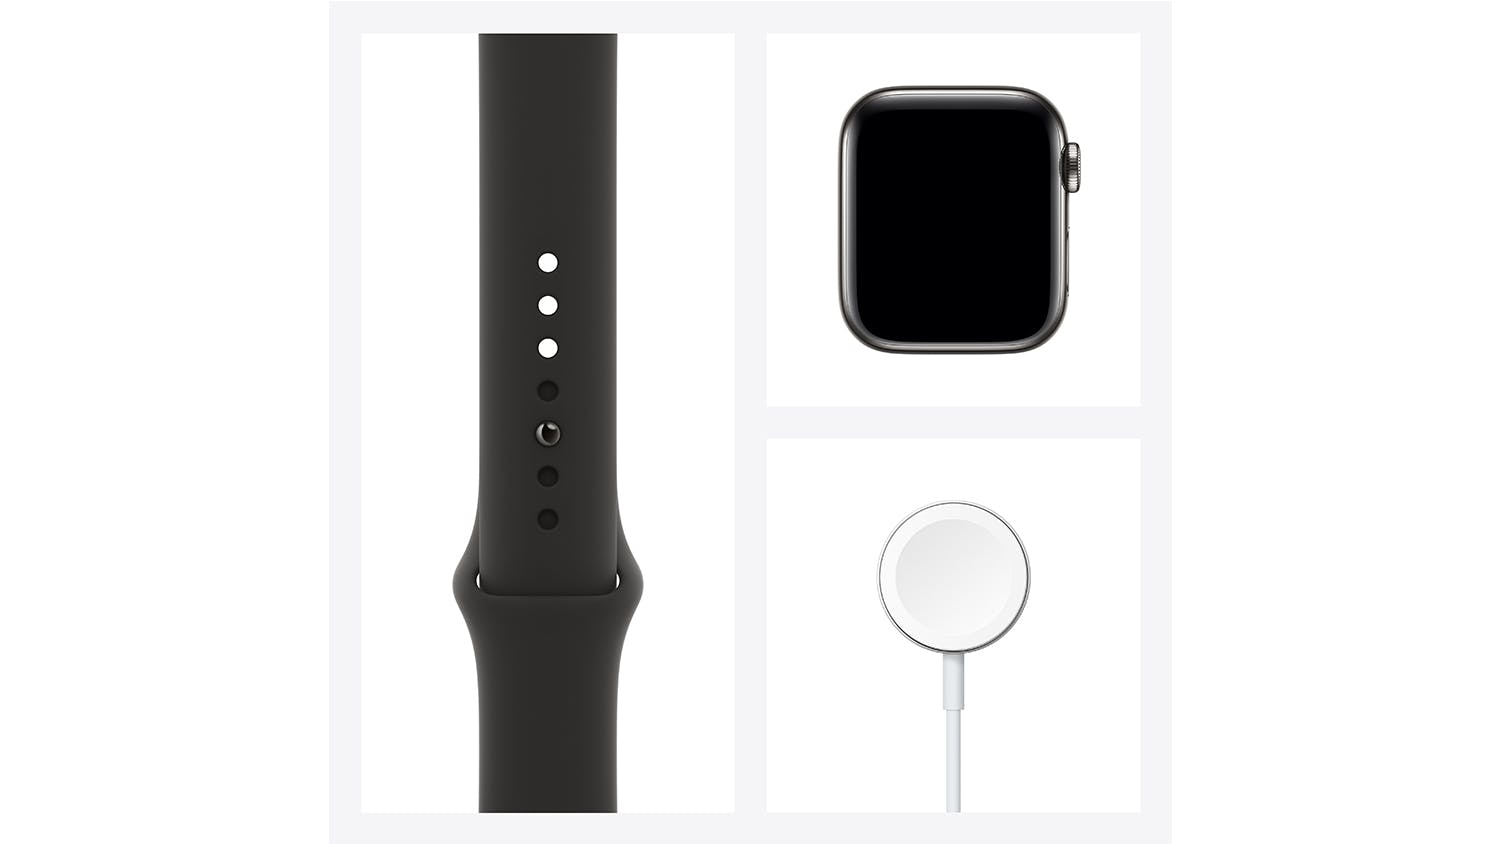 Apple Watch Series 6 (GPS+Cellular) 44mm Graphite Stainless Steel Case with Black Sport Band